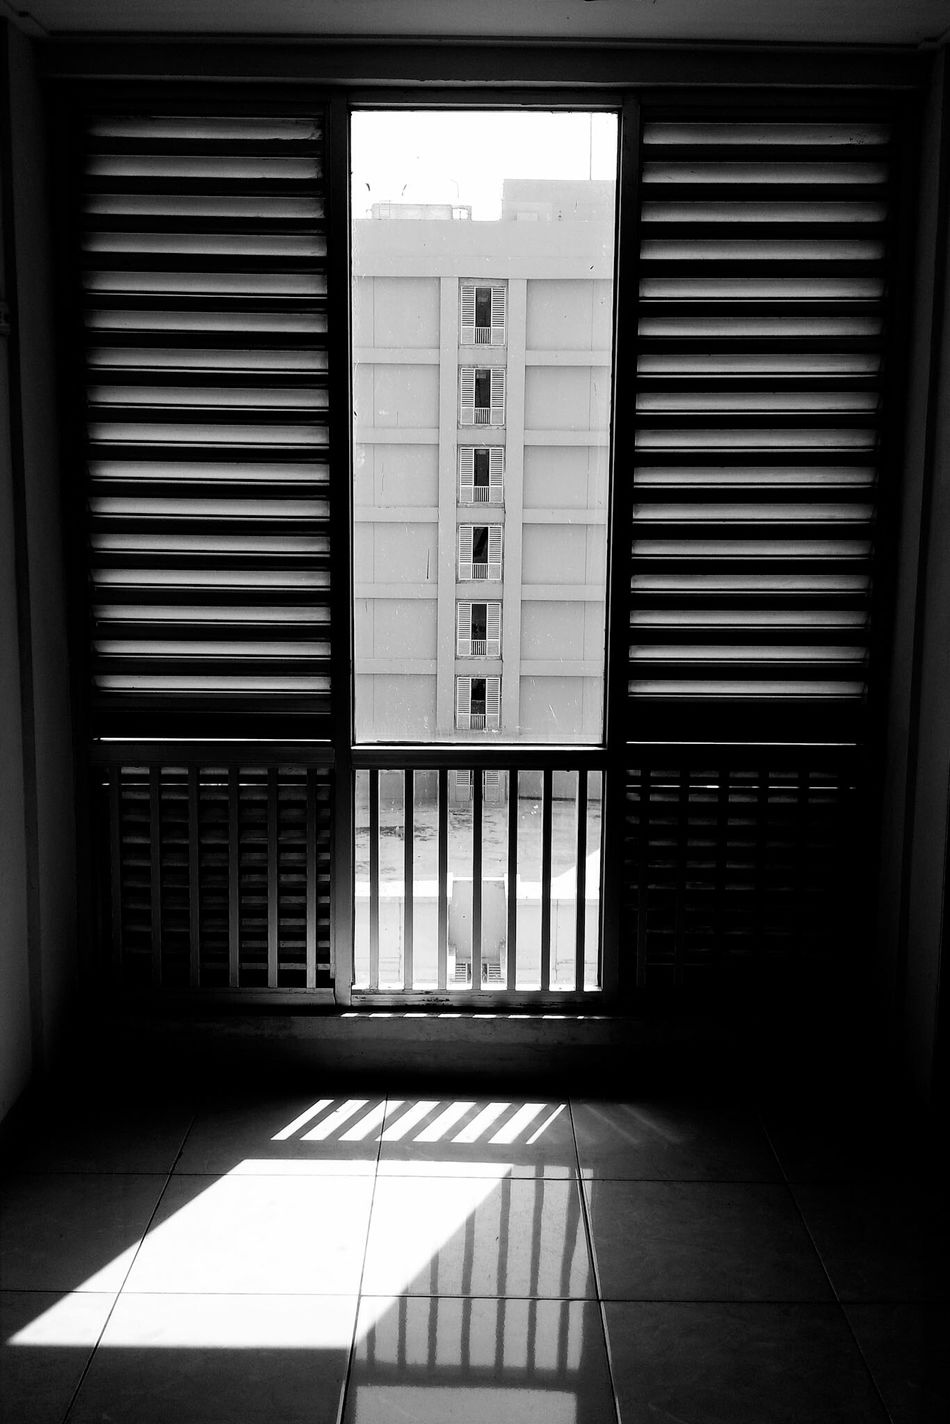 Built Structure No People Indoors  Day WindowsPhonePhotography Windows View Windowlight Windows And Doors Shadows & Light Shadows And Silhouettes Shadows And Sunlight EyeEm Best Shots Best EyeEm Shot